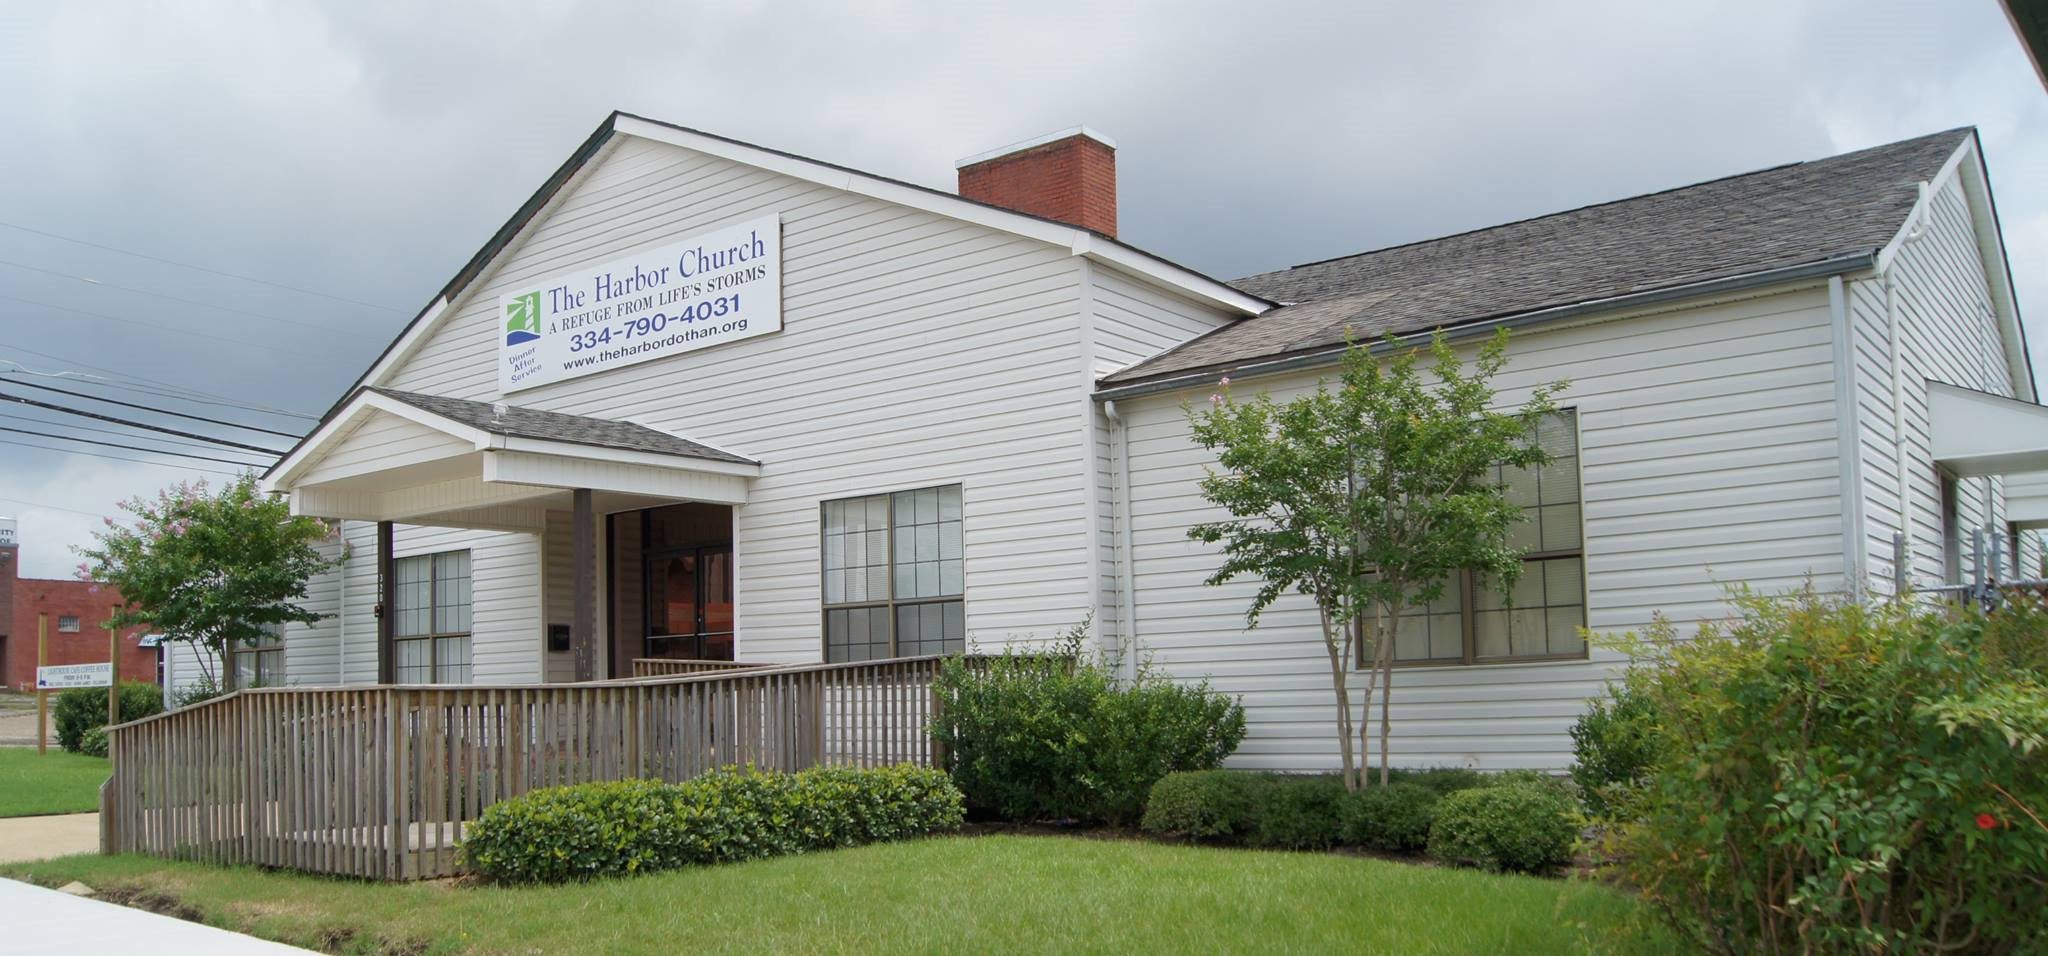 The Harbor Church Dothan